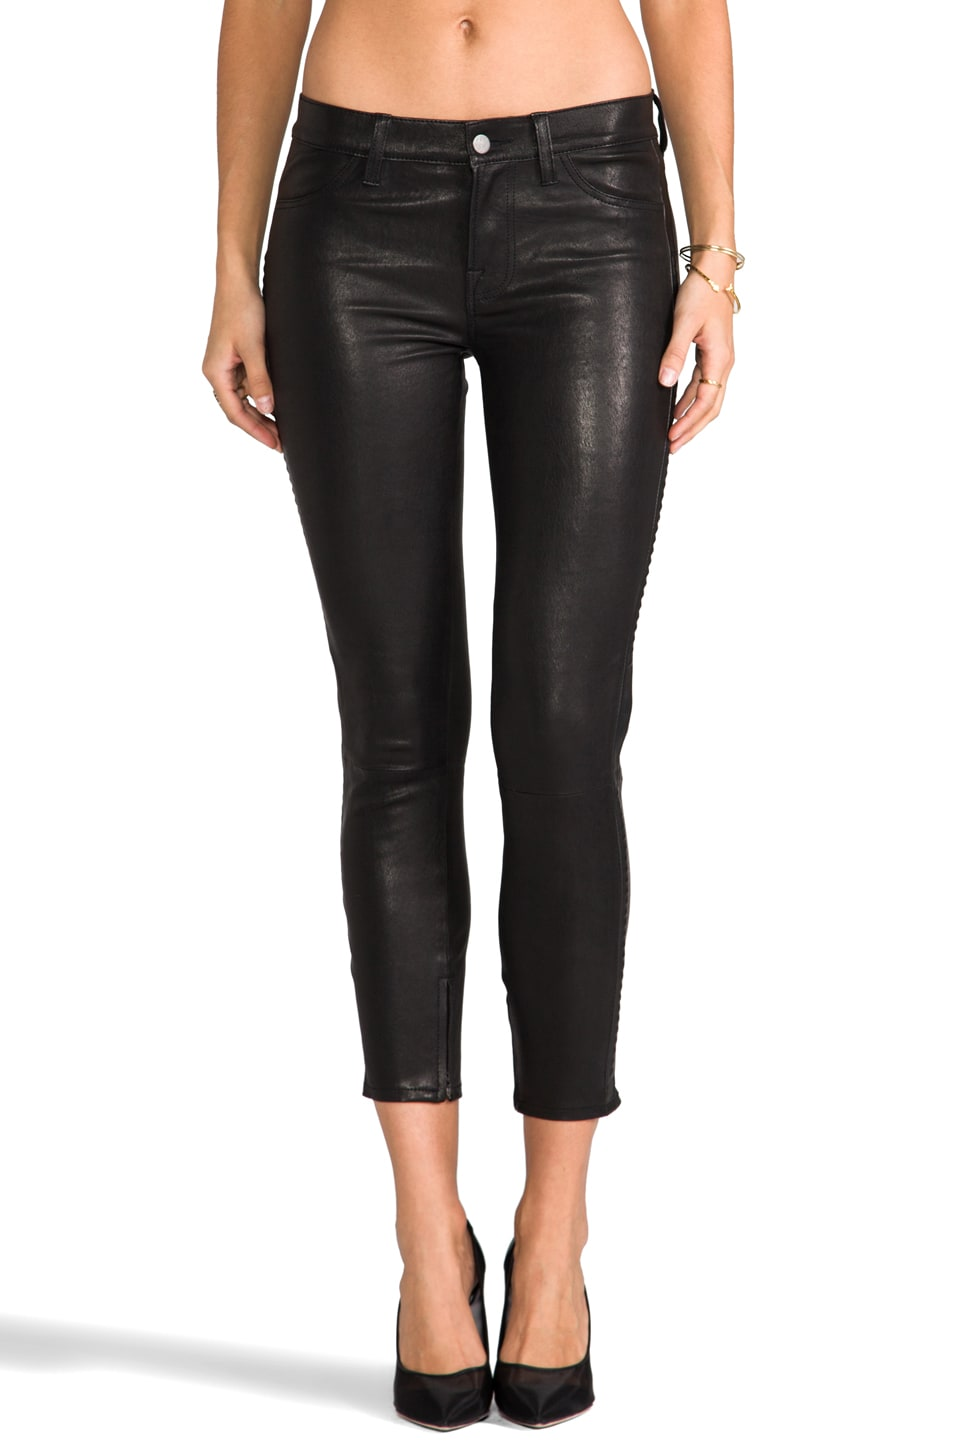 J Brand Bonded Studded Leather Pant in Noir